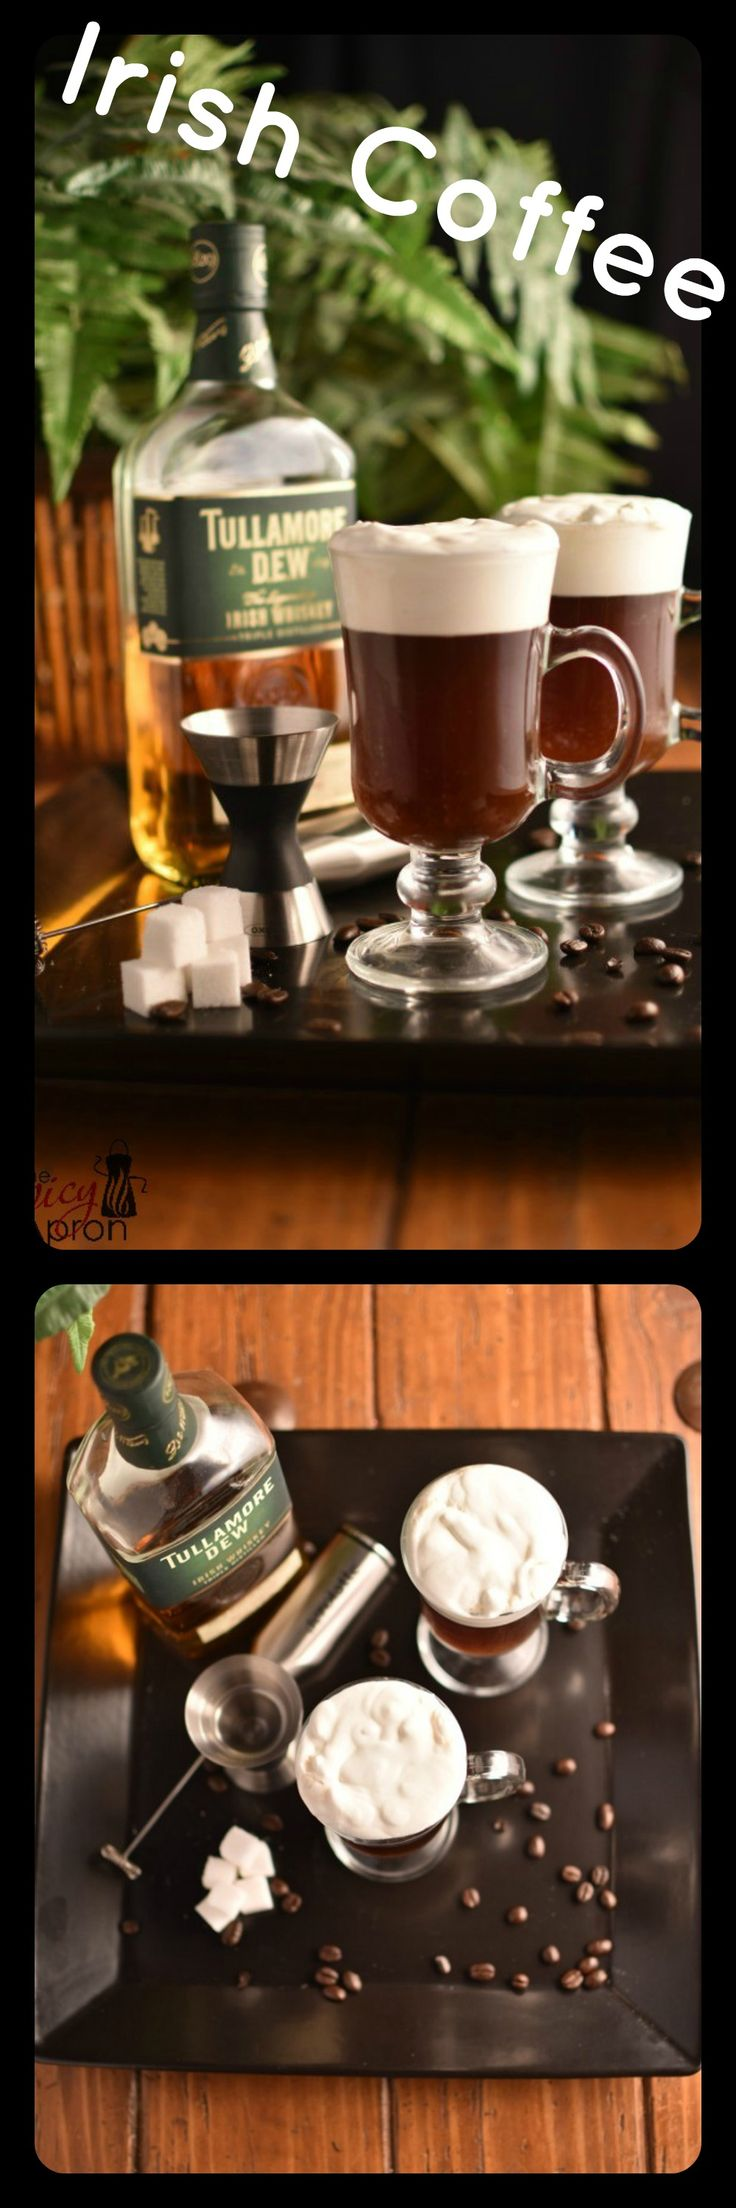 Warm up with this traditional Irish Coffee. Now that you know how to make it, you'll never go back!